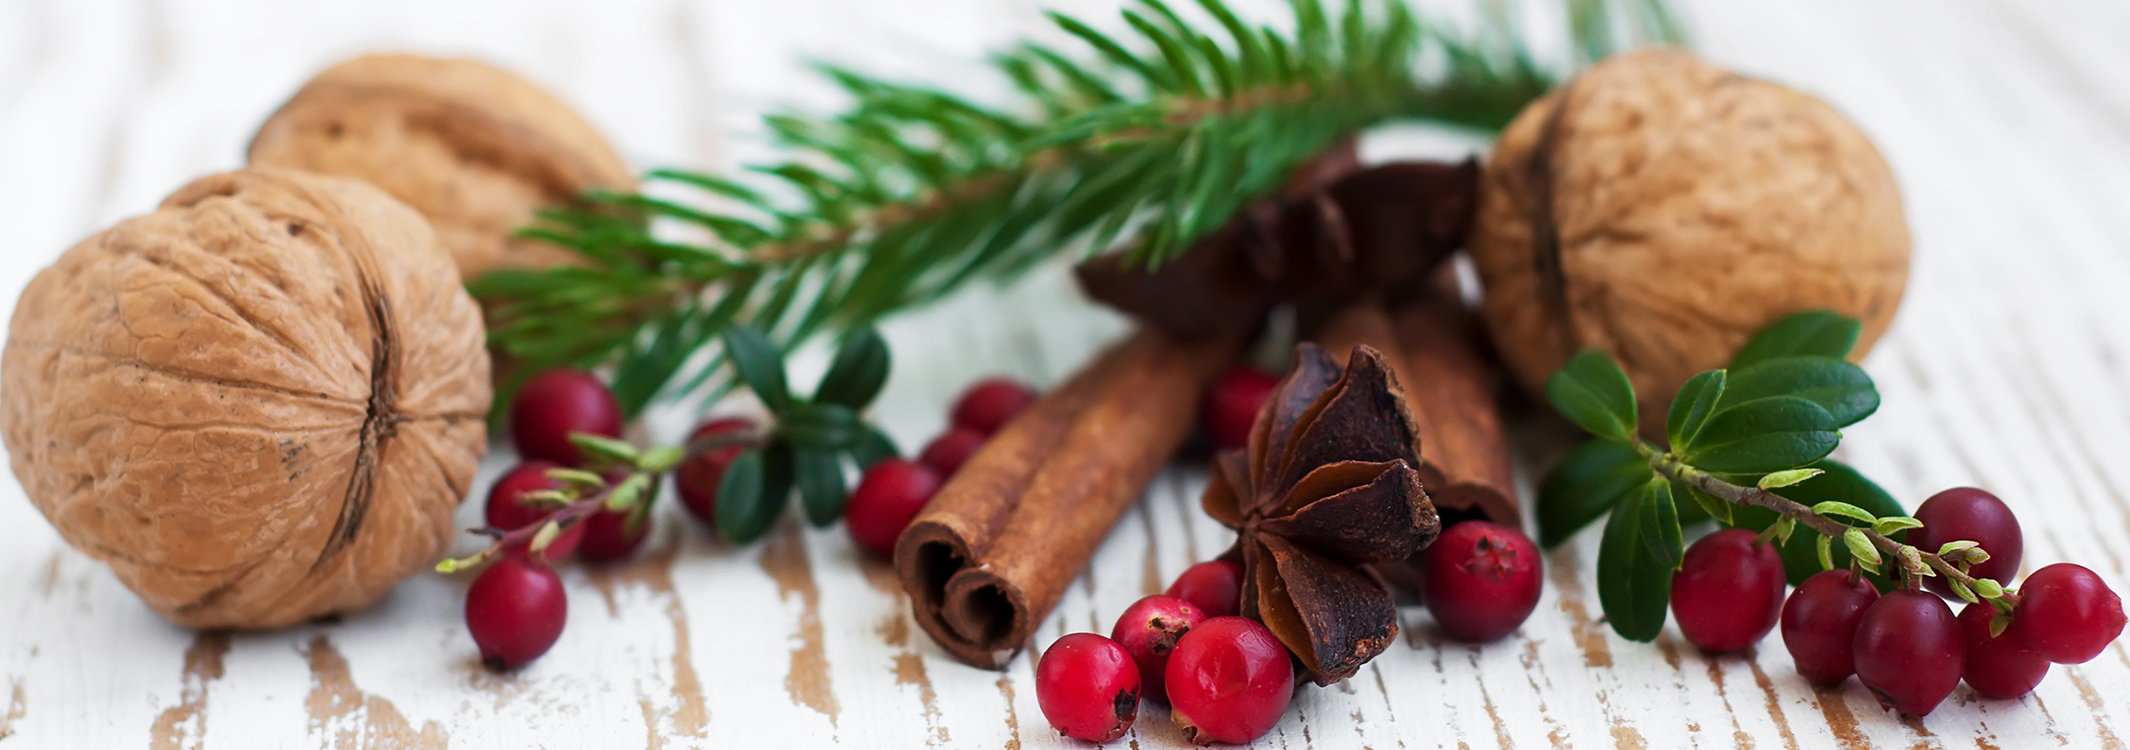 Cinnamon, Nuts, and Pine Sprigs